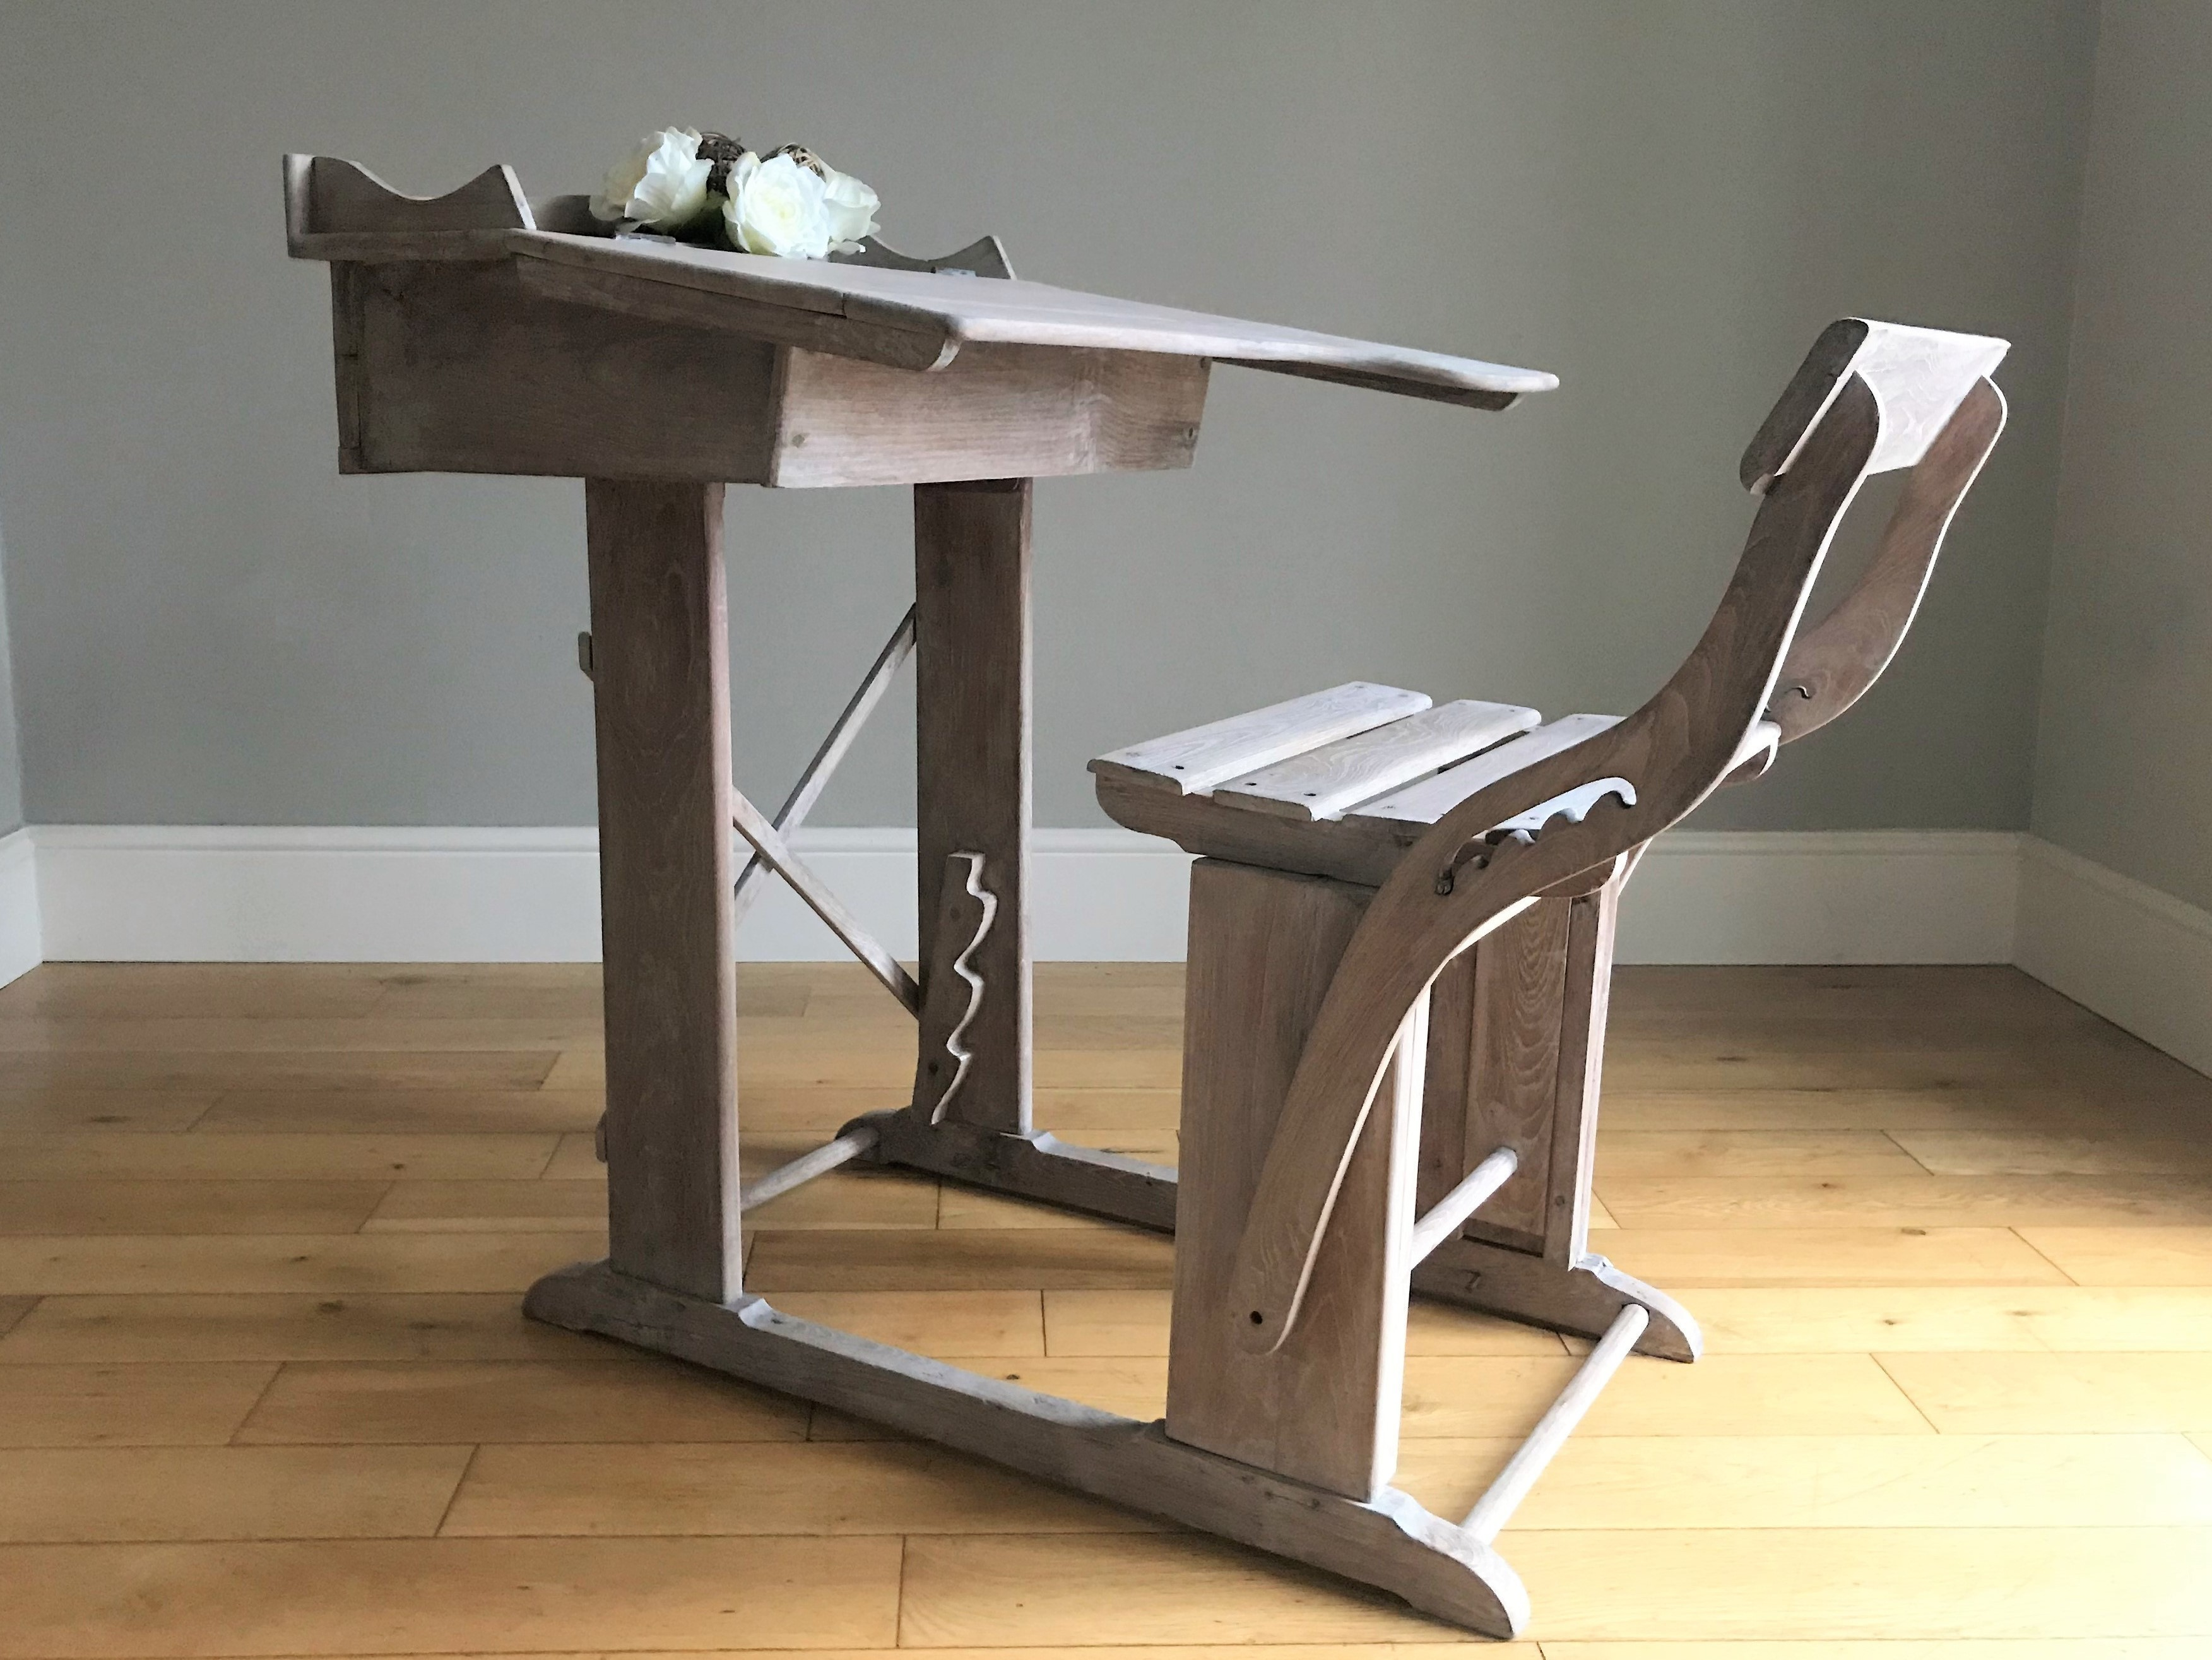 Prime Vintage Wooden Desk With Adjustable Chair Delivery Quote Available On Request Cjindustries Chair Design For Home Cjindustriesco